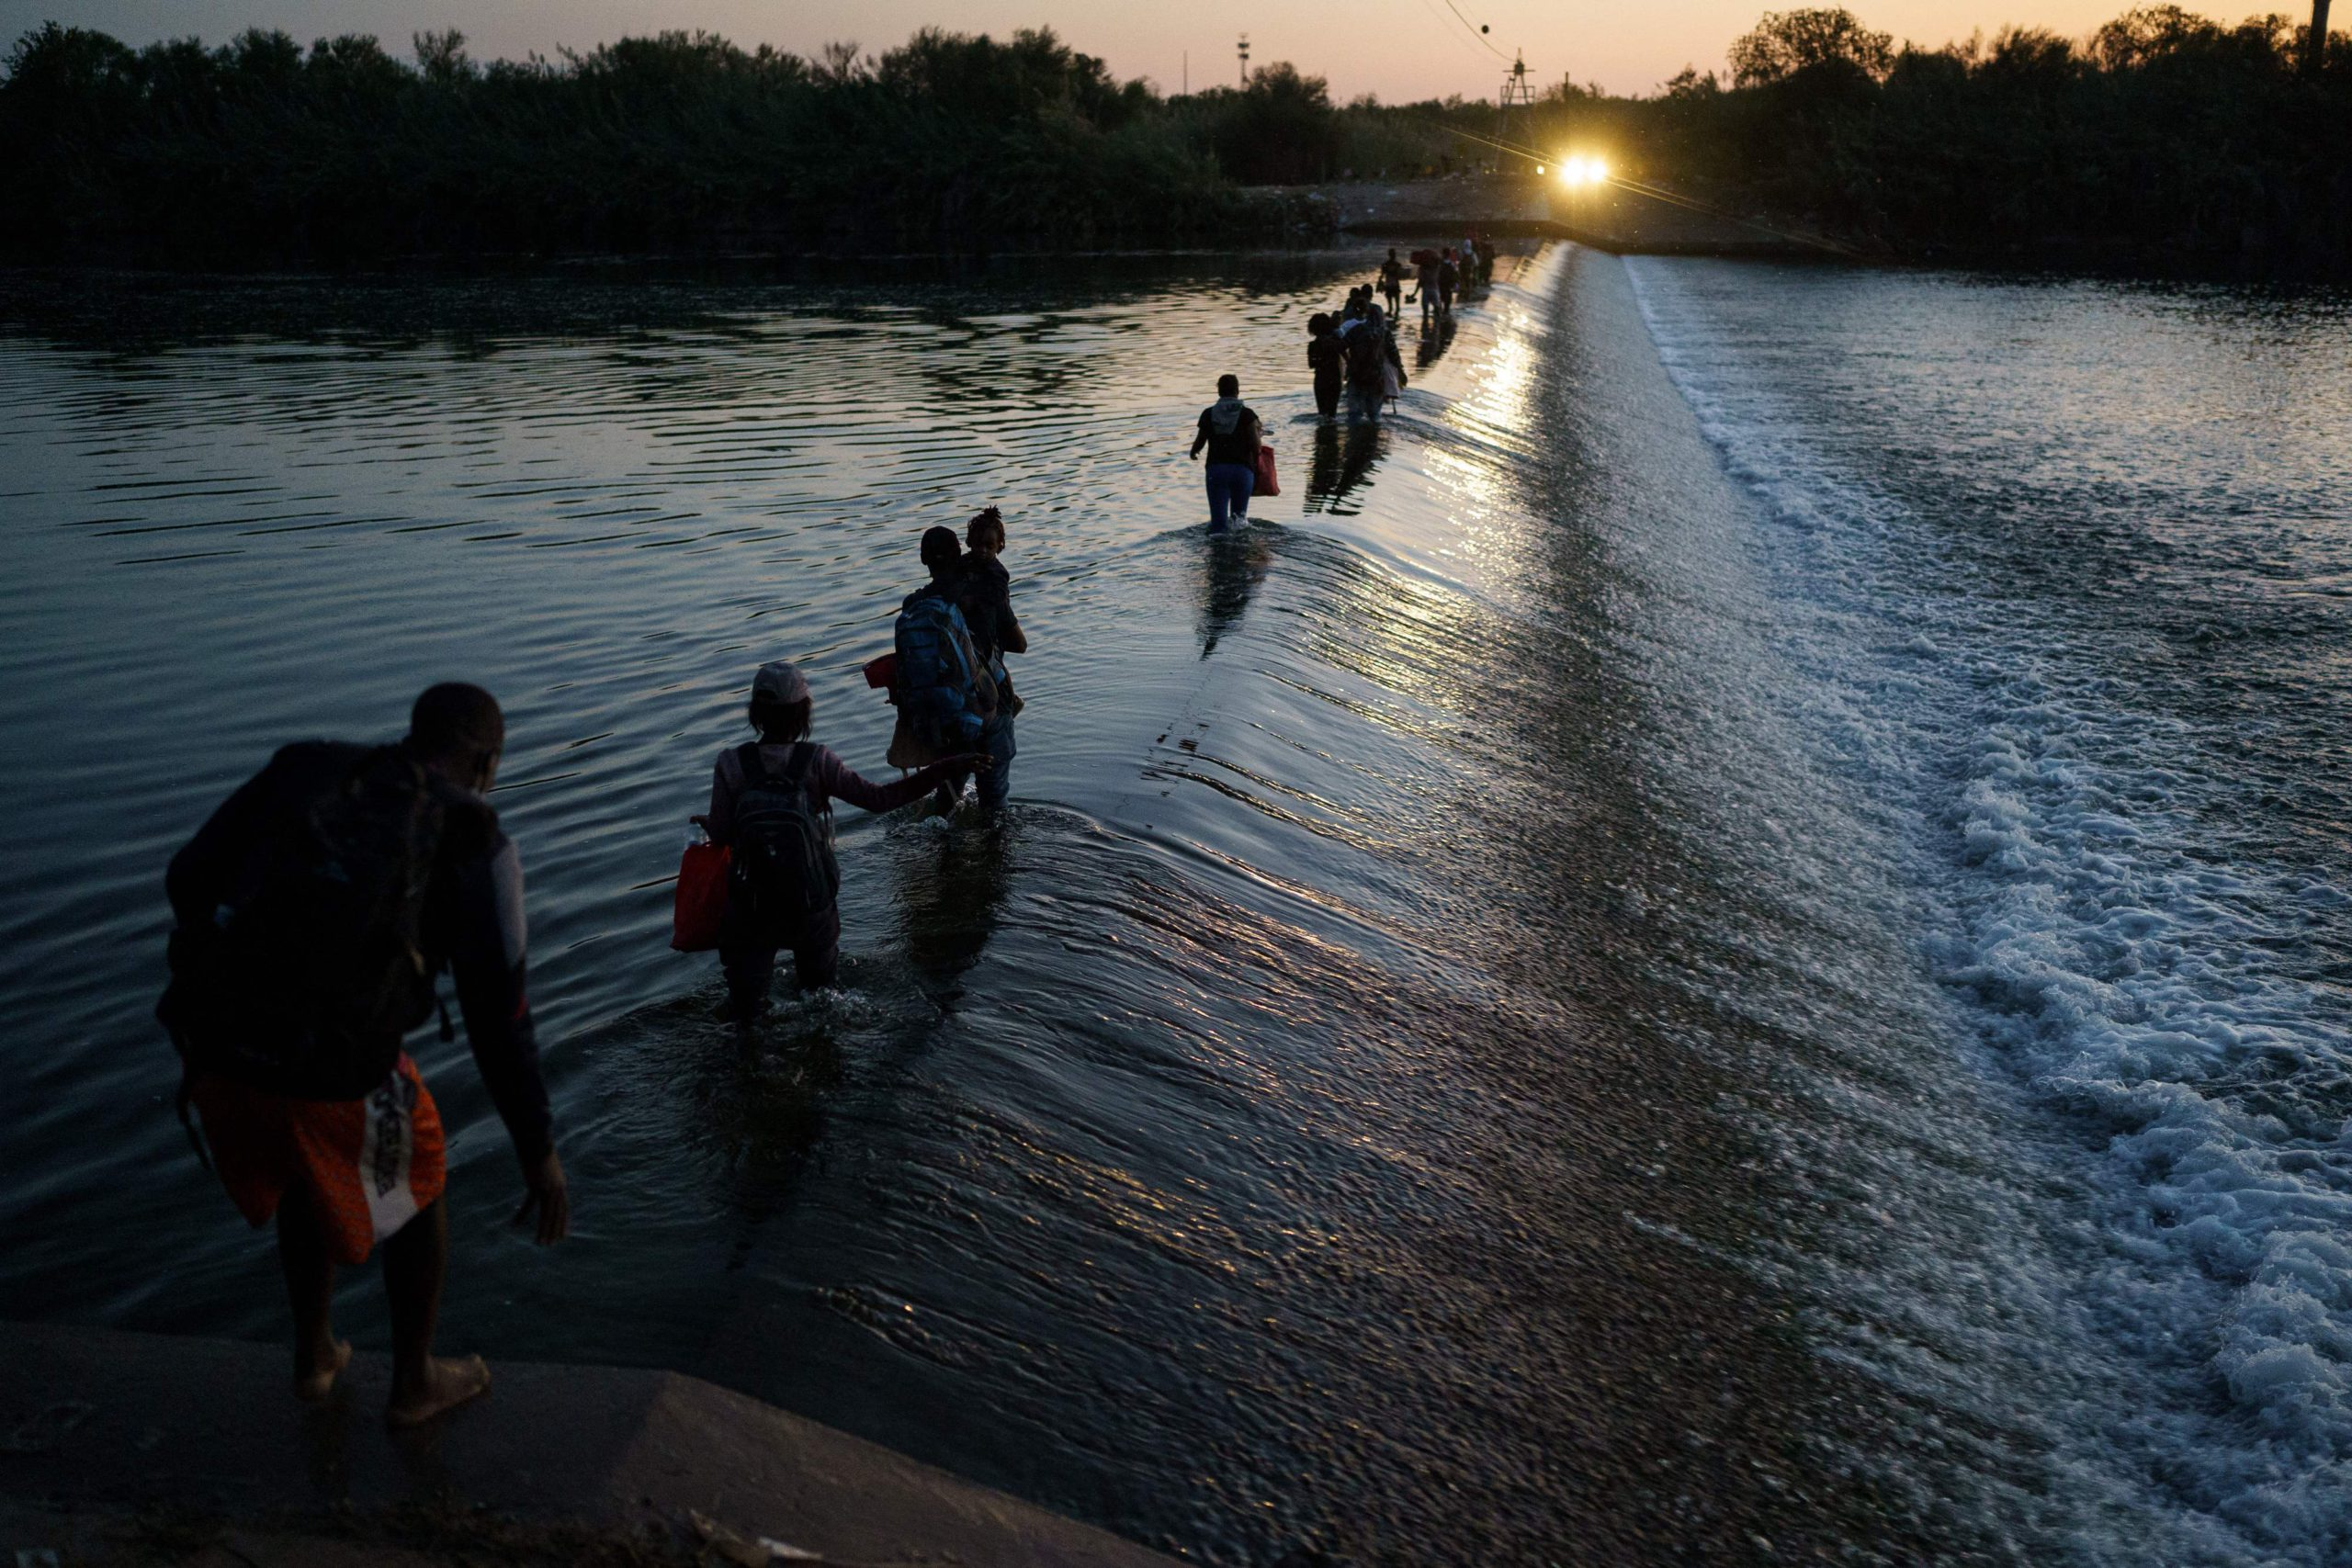 The US plans to expel thousands of Haitians held in South Texas